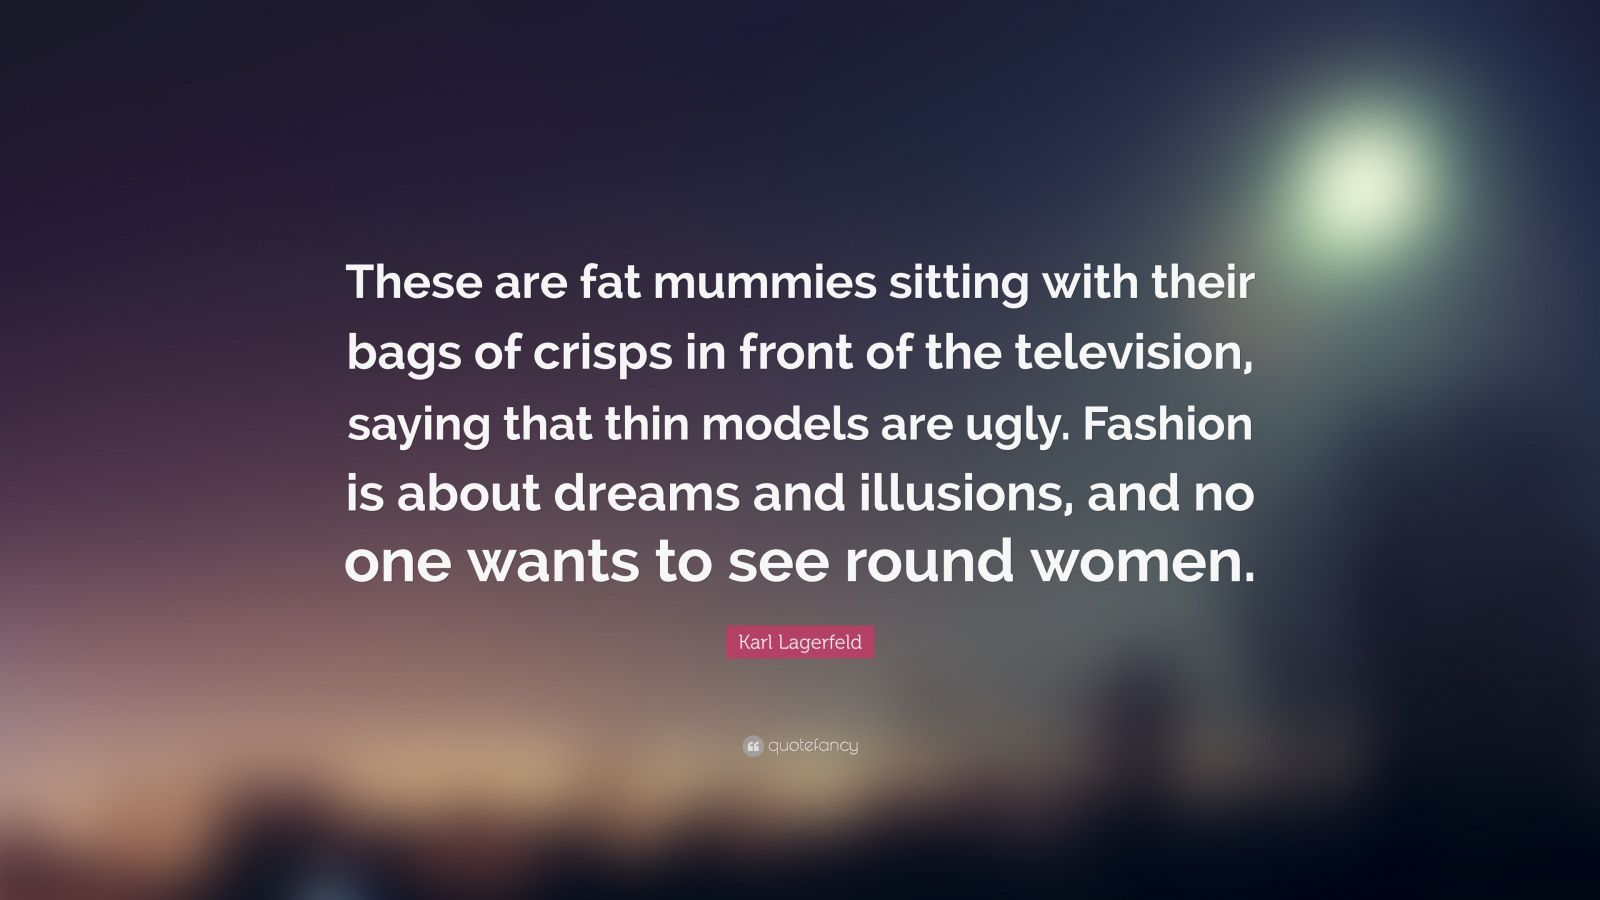 """Karl Lagerfeld Quote: """"These are fat mummies sitting with their bags of crisps in front of the television, saying that thin models are ugly. Fashion is about dreams and illusions, and no one wants to see round women."""""""